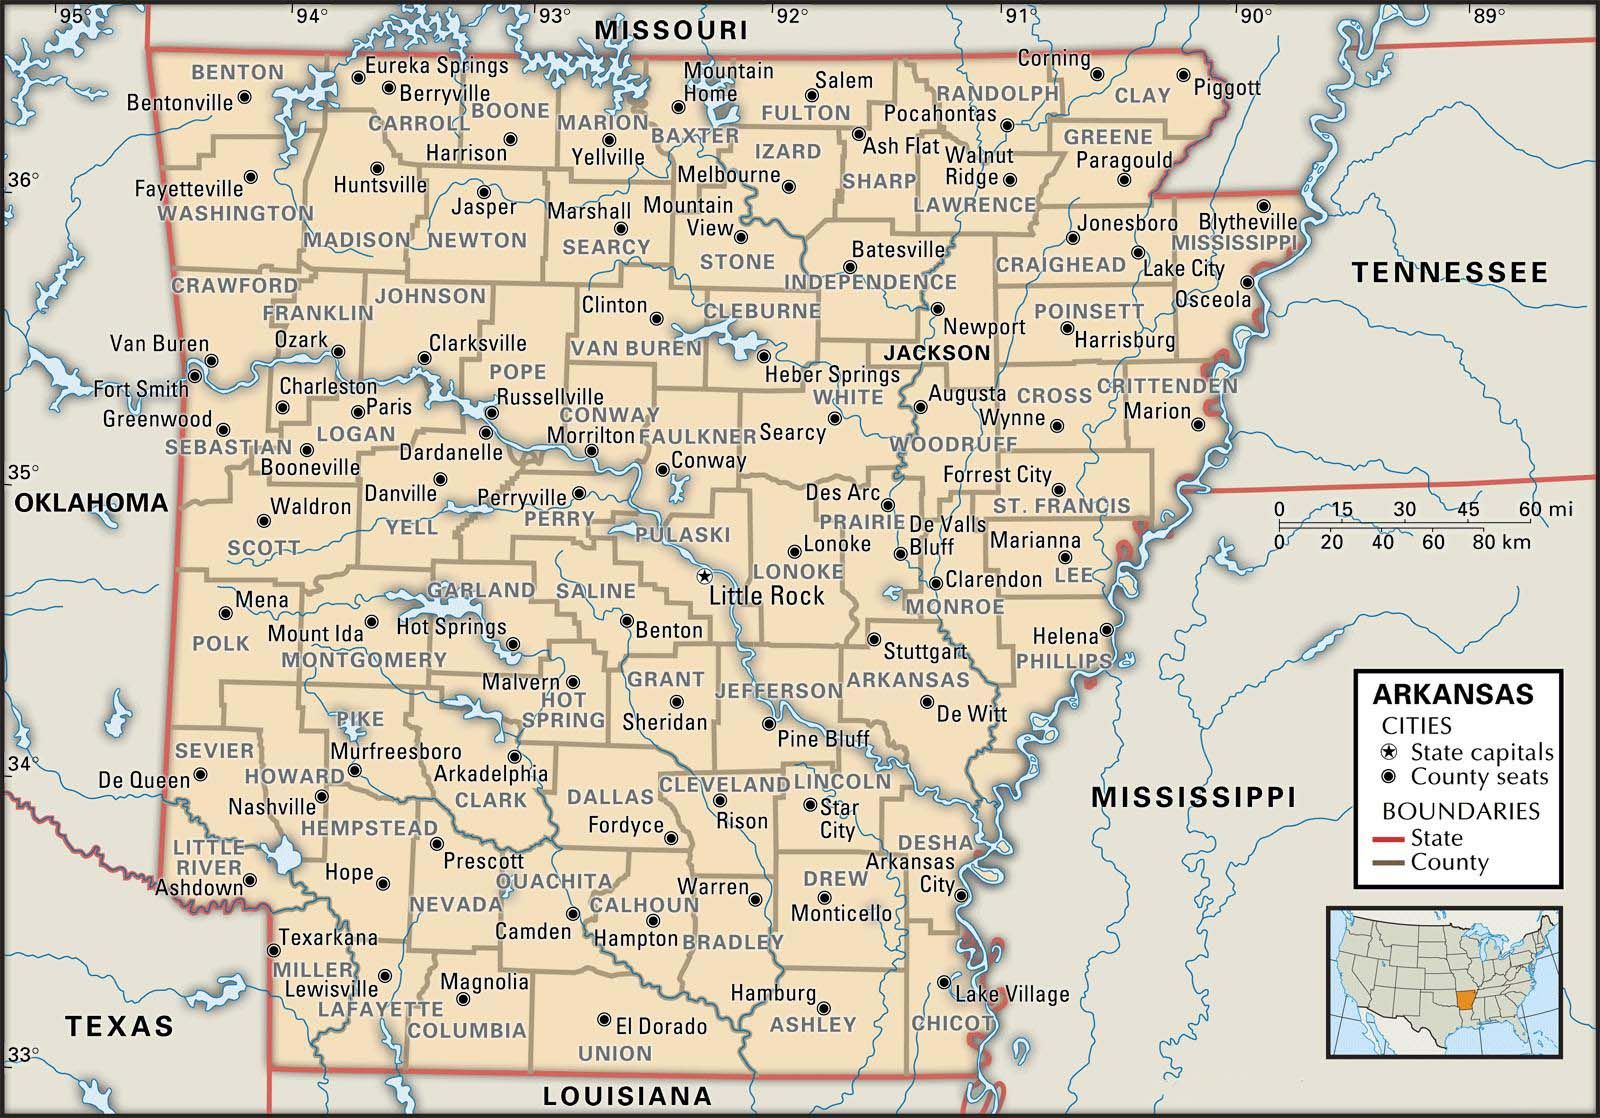 arkansas+atlas+map | Map of Arkansas county boundaries and county